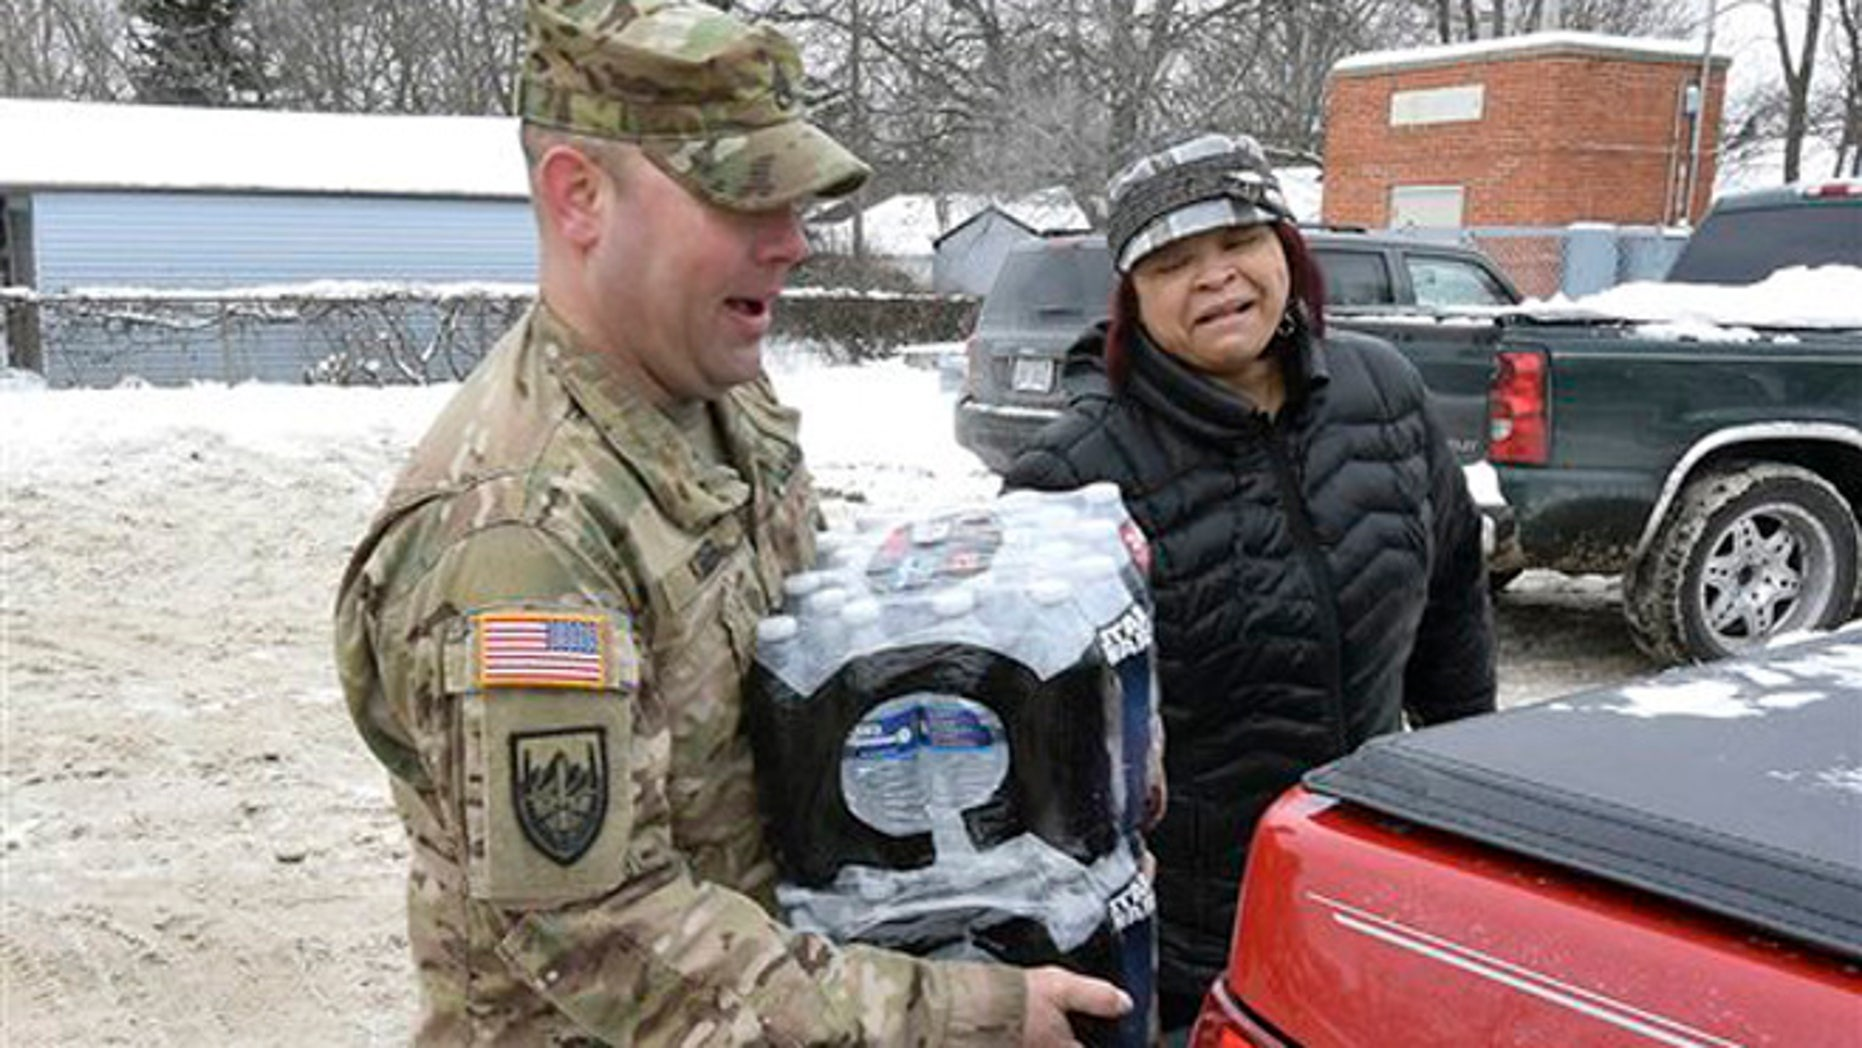 Michigan Sgt. Steve Kiger, left, carries cases of water for a Flint resident, Wednesday Jan 13, 2016 in Flint, Mich. (Dale G. Young/Detroit News via AP)